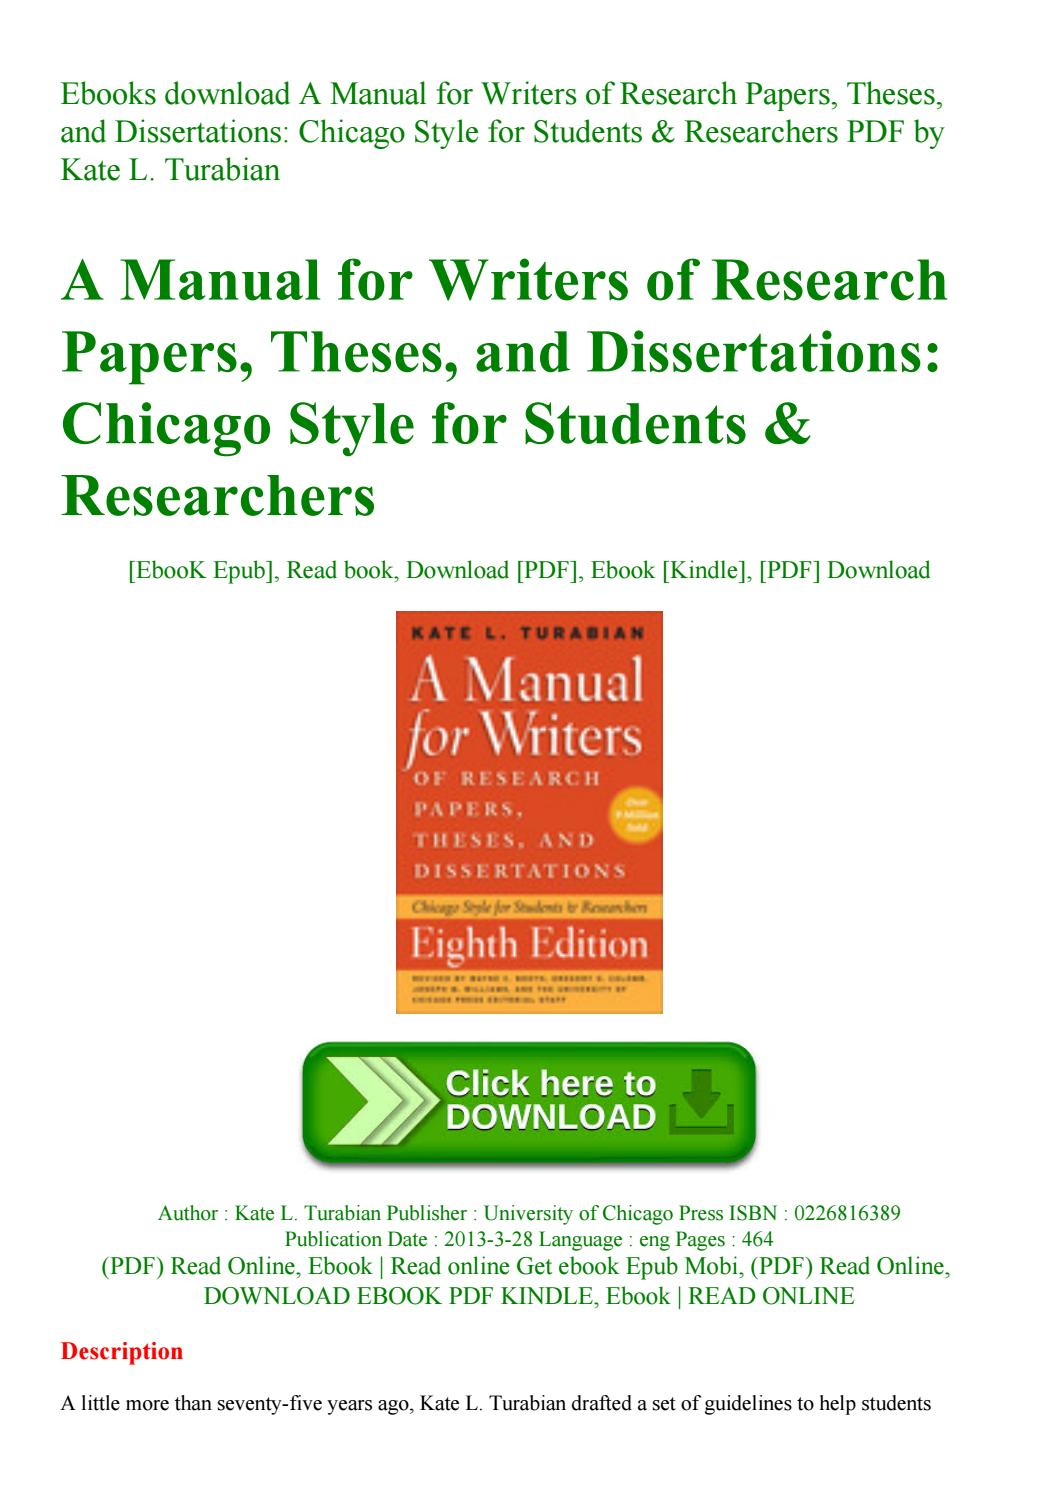 004 Page 1 Manual For Writers Of Researchs Theses And Dissertations Eighth Edition Phenomenal A Research Papers Pdf Full